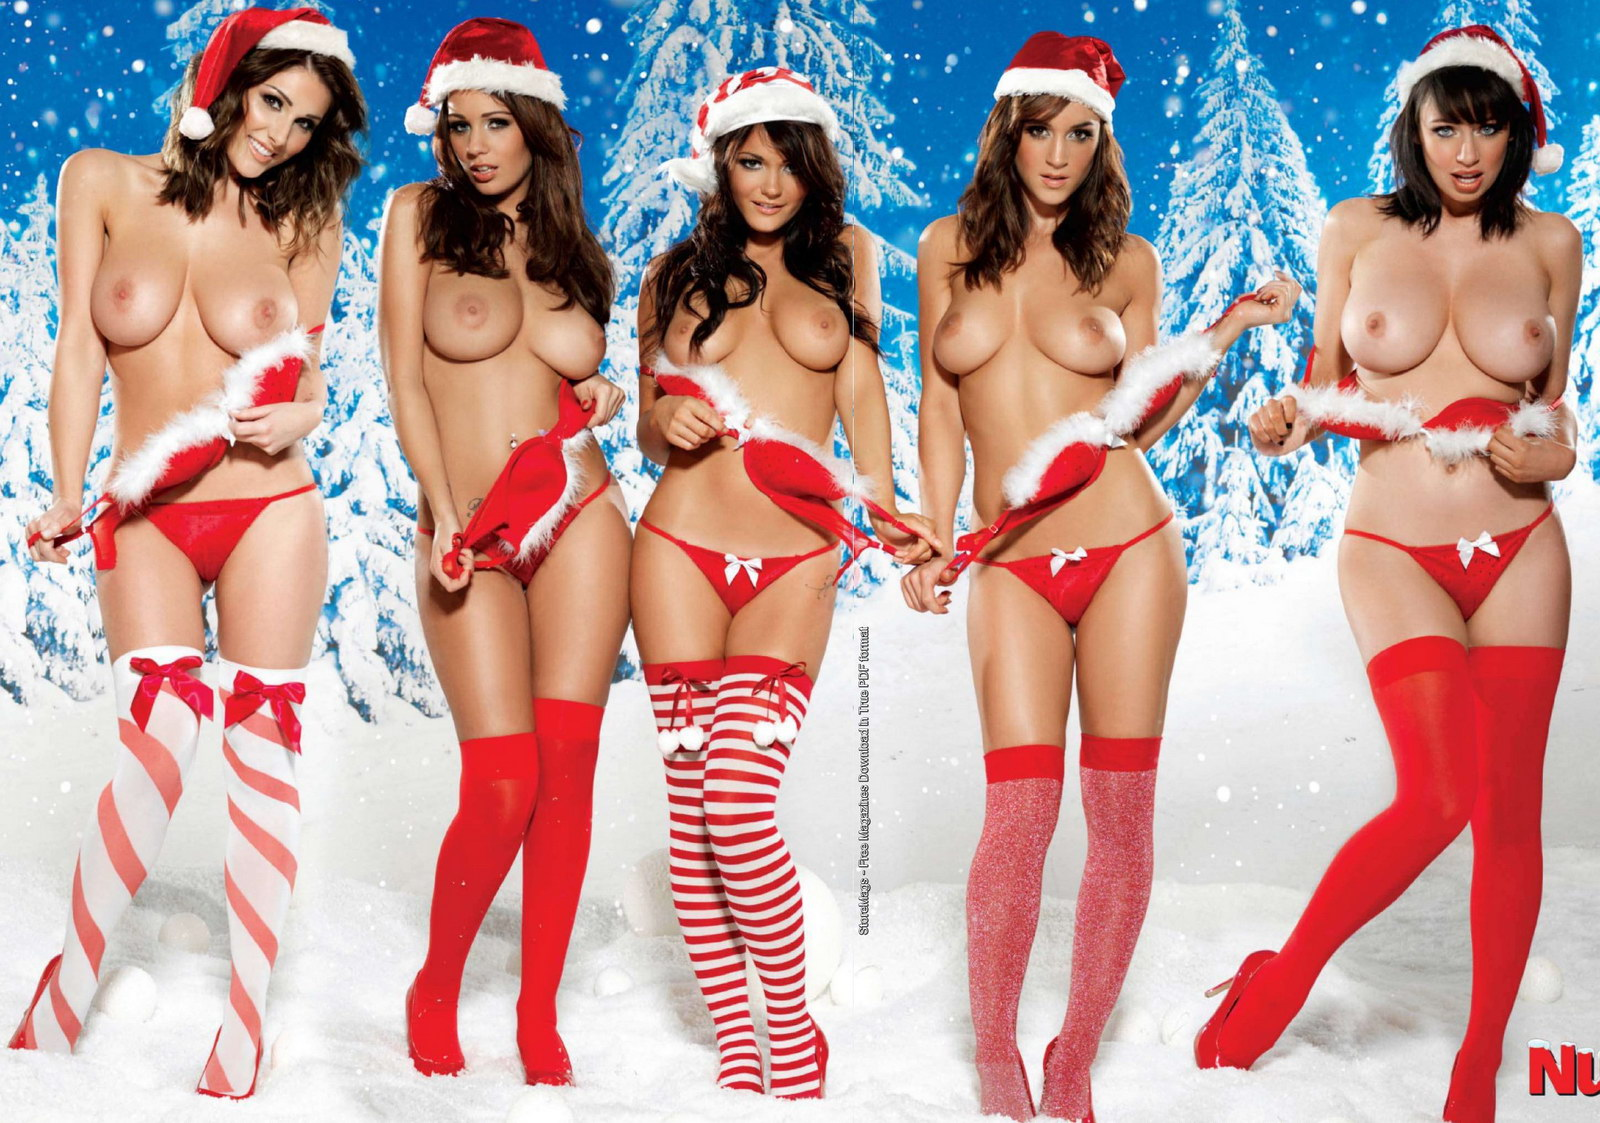 Rosie Jones Holly Peers India Reynolds Sophie Howard Lucy Pinder Big Boobs Naked Tits Merry Sexy Christmas 2 Don't shoot the Opera Tower! Photo: Ziv Mizrahi; Design: Ido Kenan.